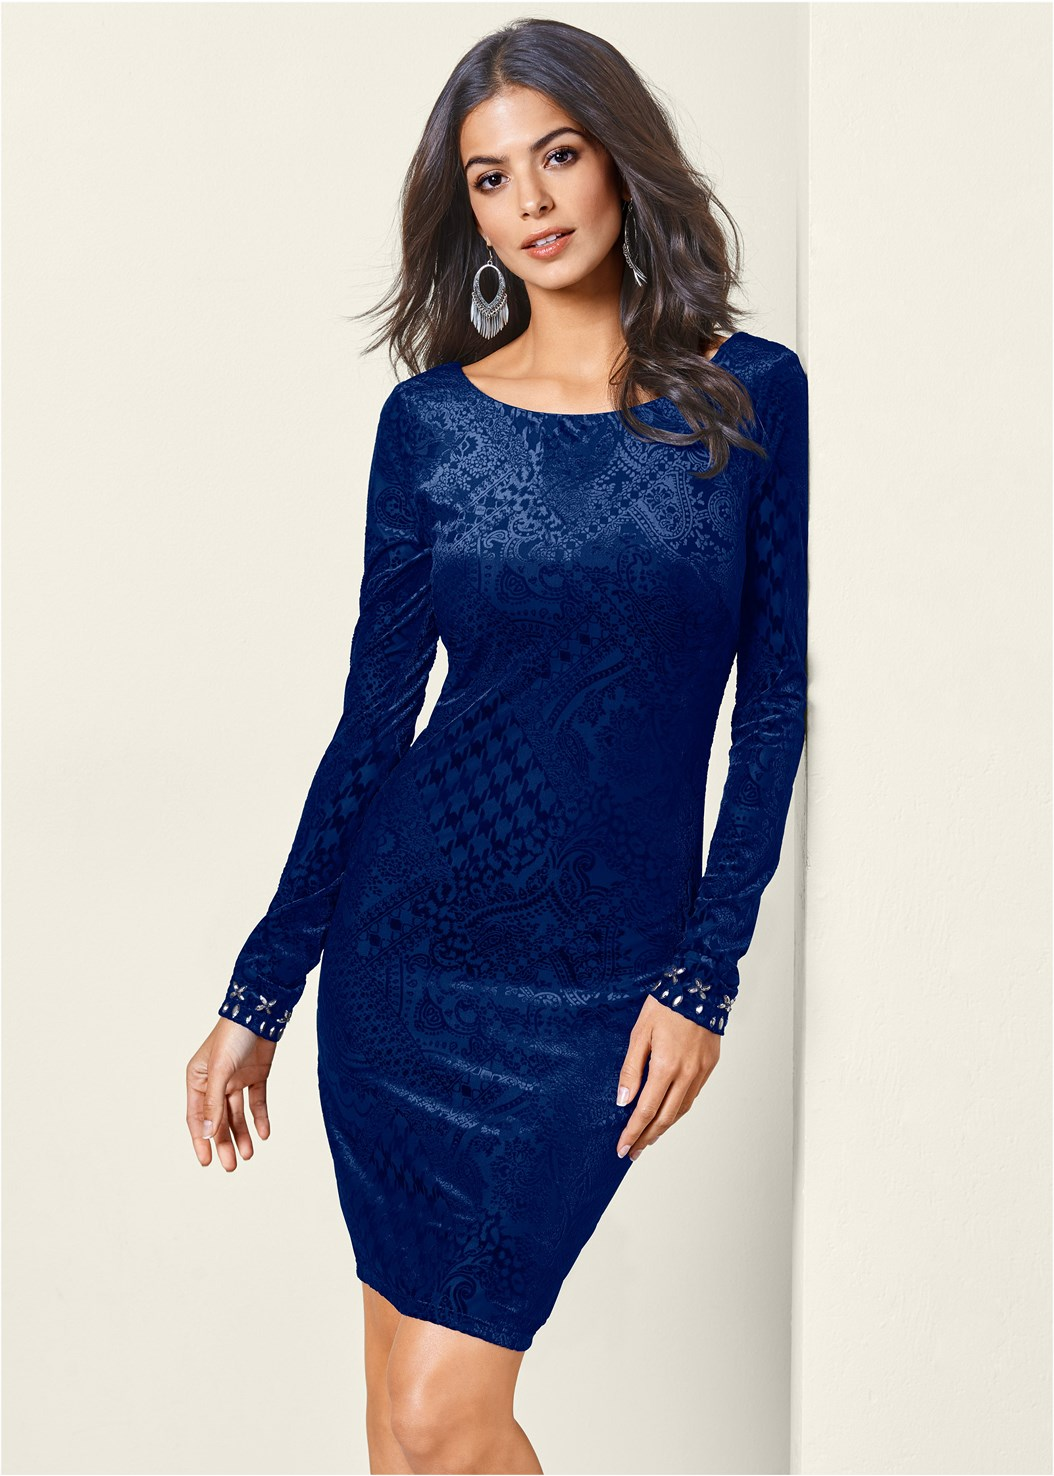 Burnout Jeweled Dress